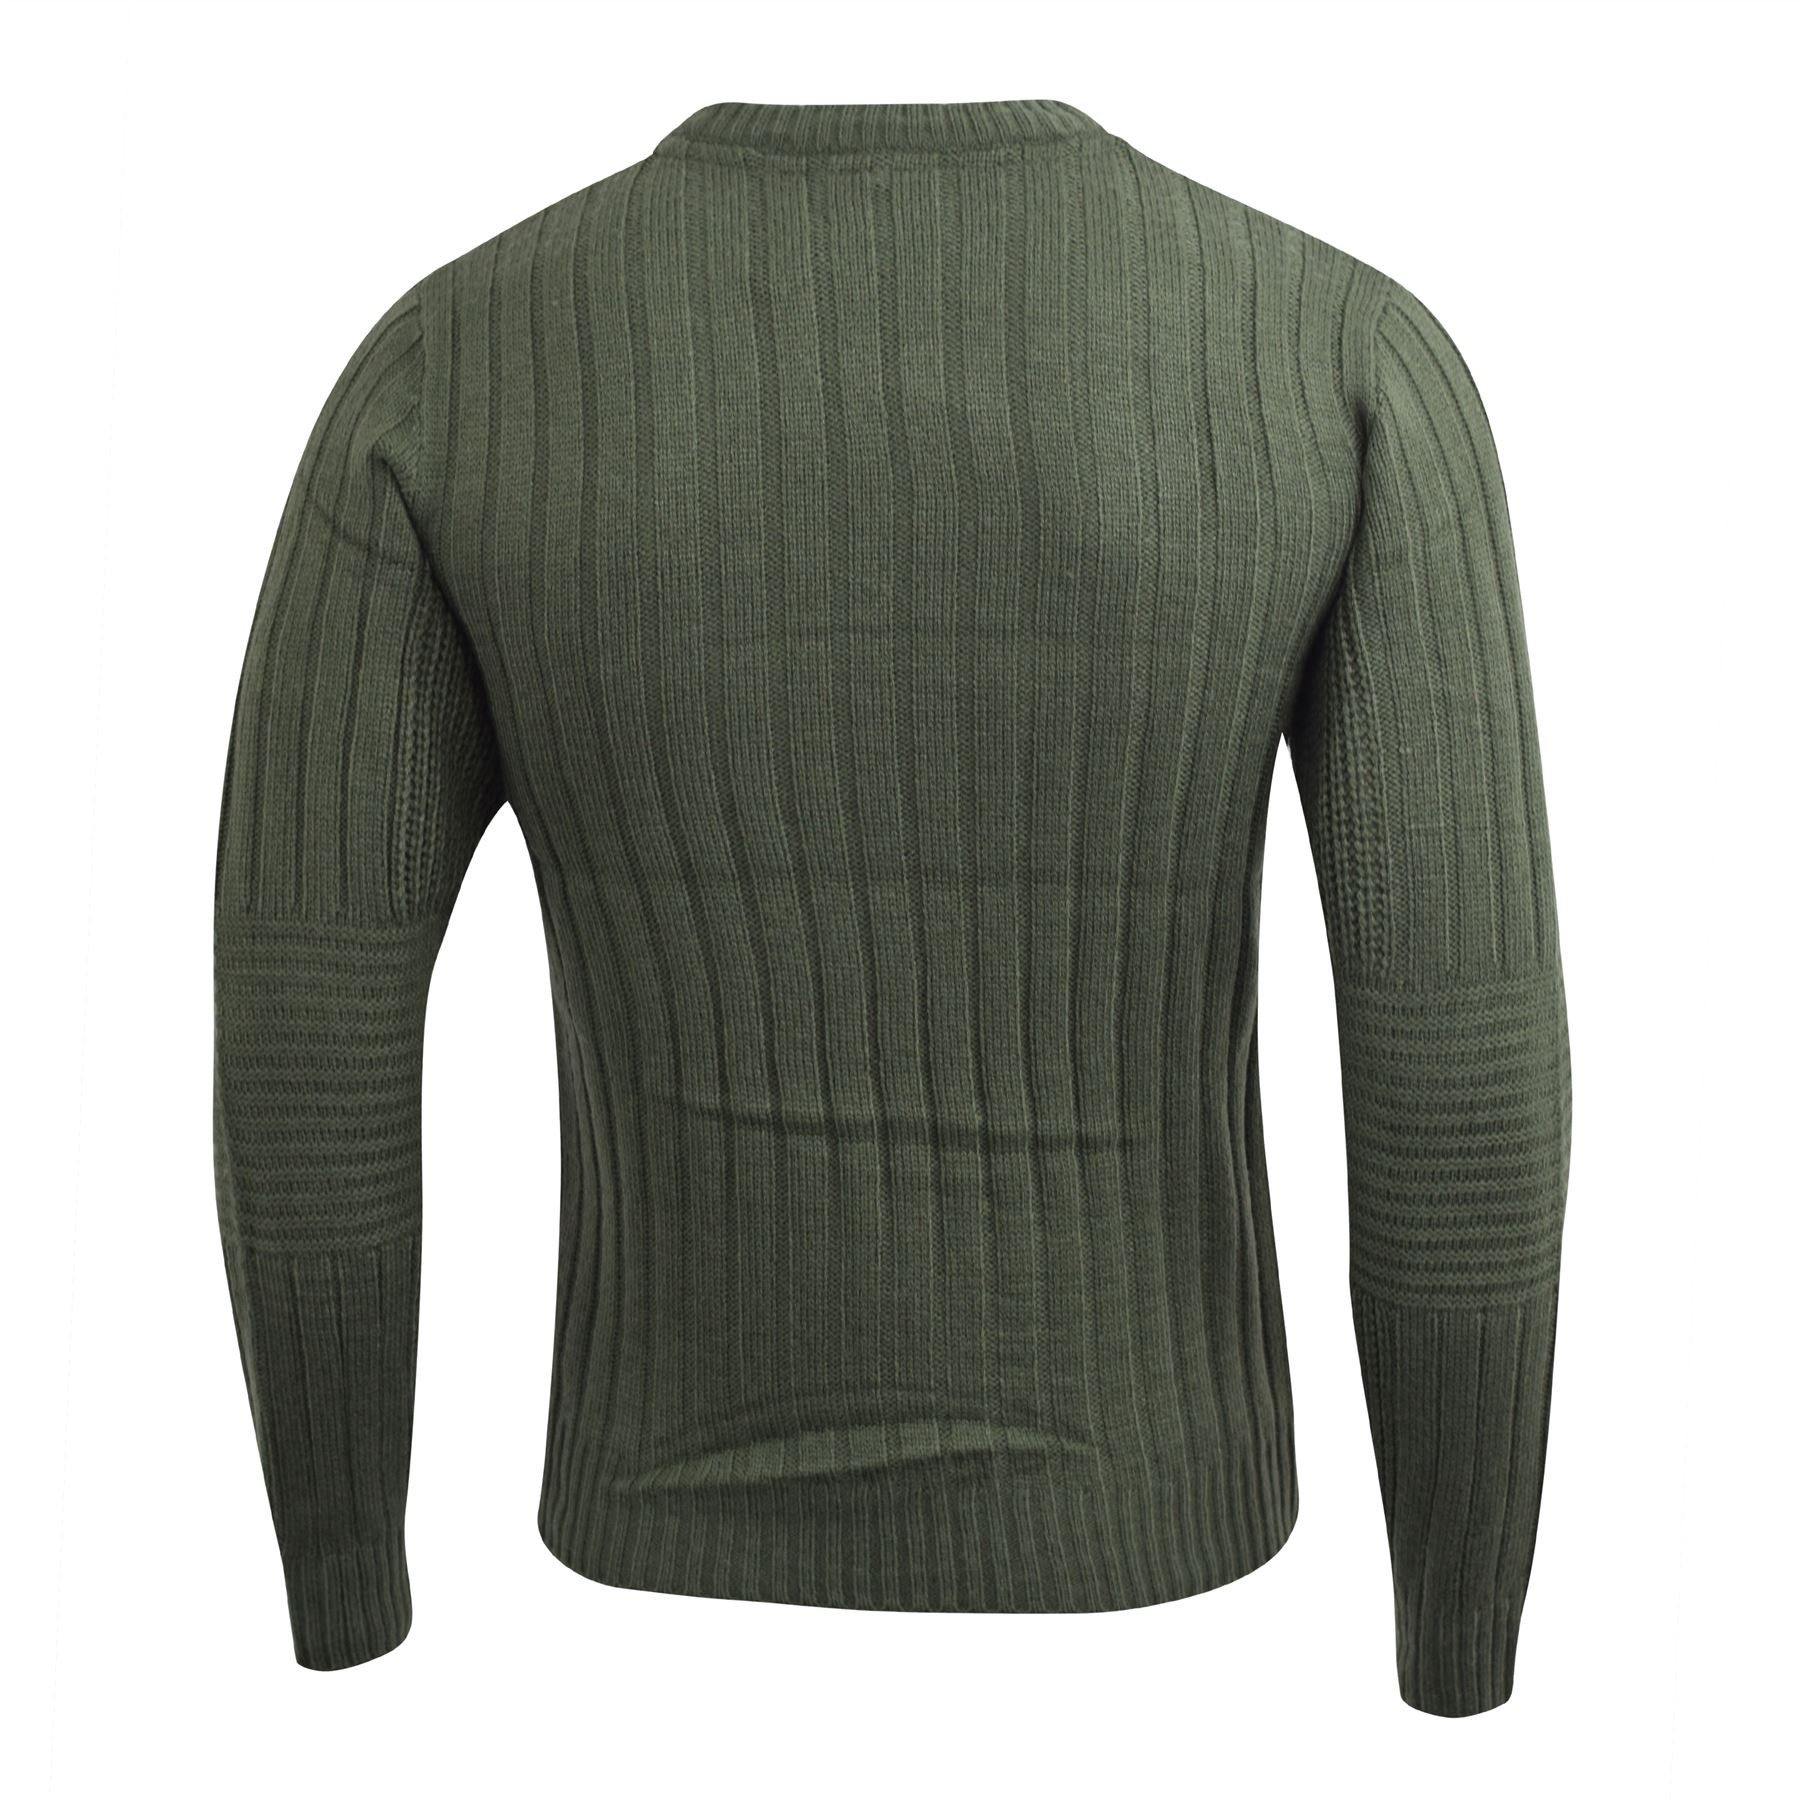 Mens-Knitwear-Crosshatch-Sweater-Textured-Knitted-Jumper thumbnail 3